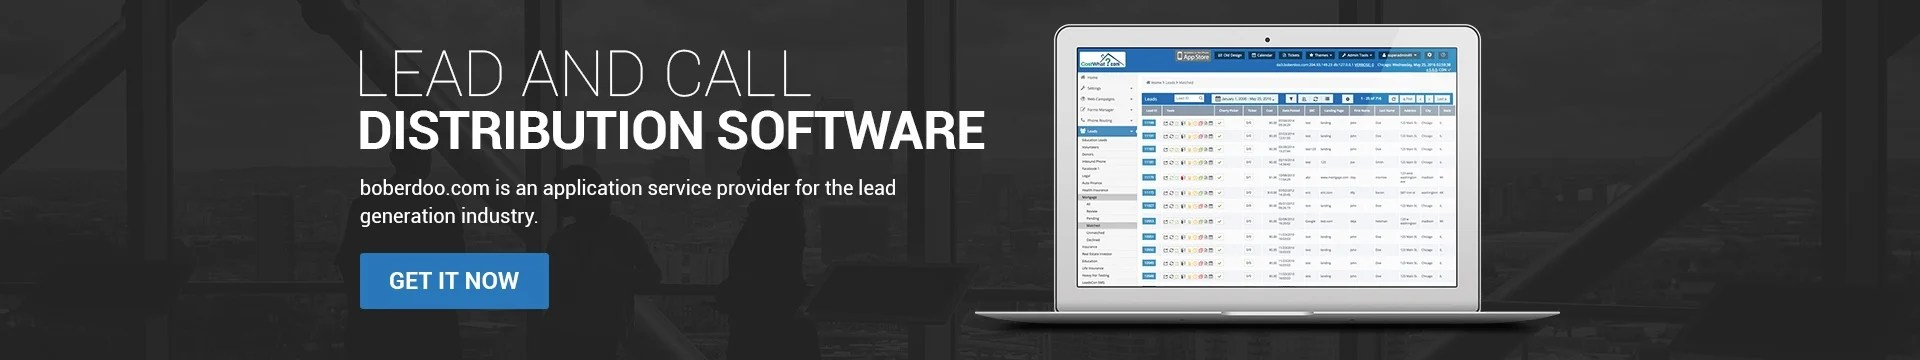 boberdoo Lead Distribution Software, Ping/Post  Call Routing